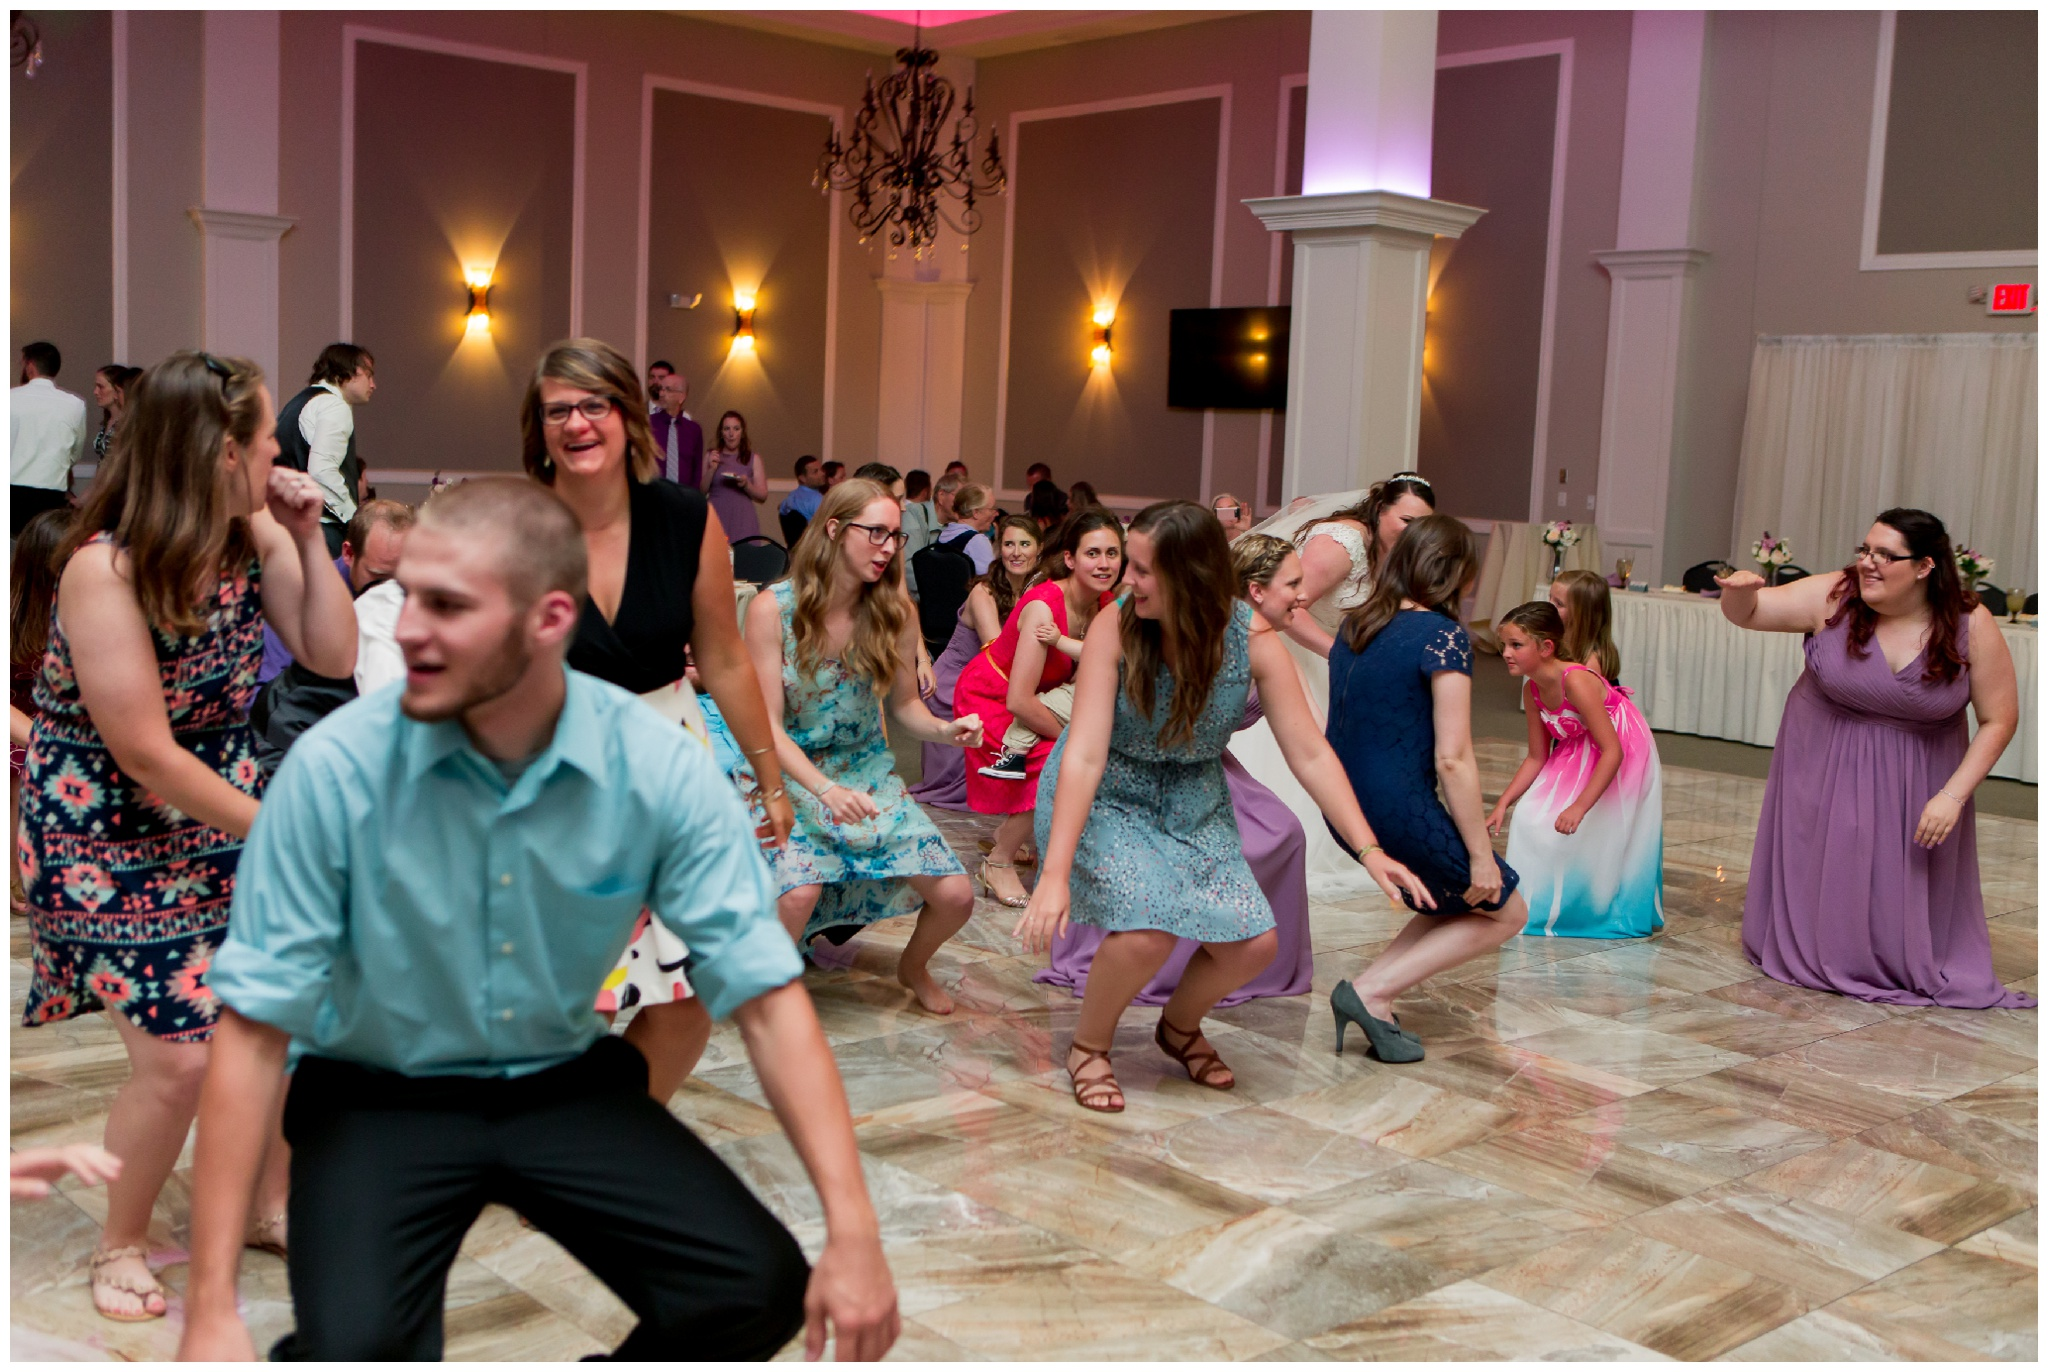 wedding reception guests dancing at Bel Air Events in Kokomo Indiana